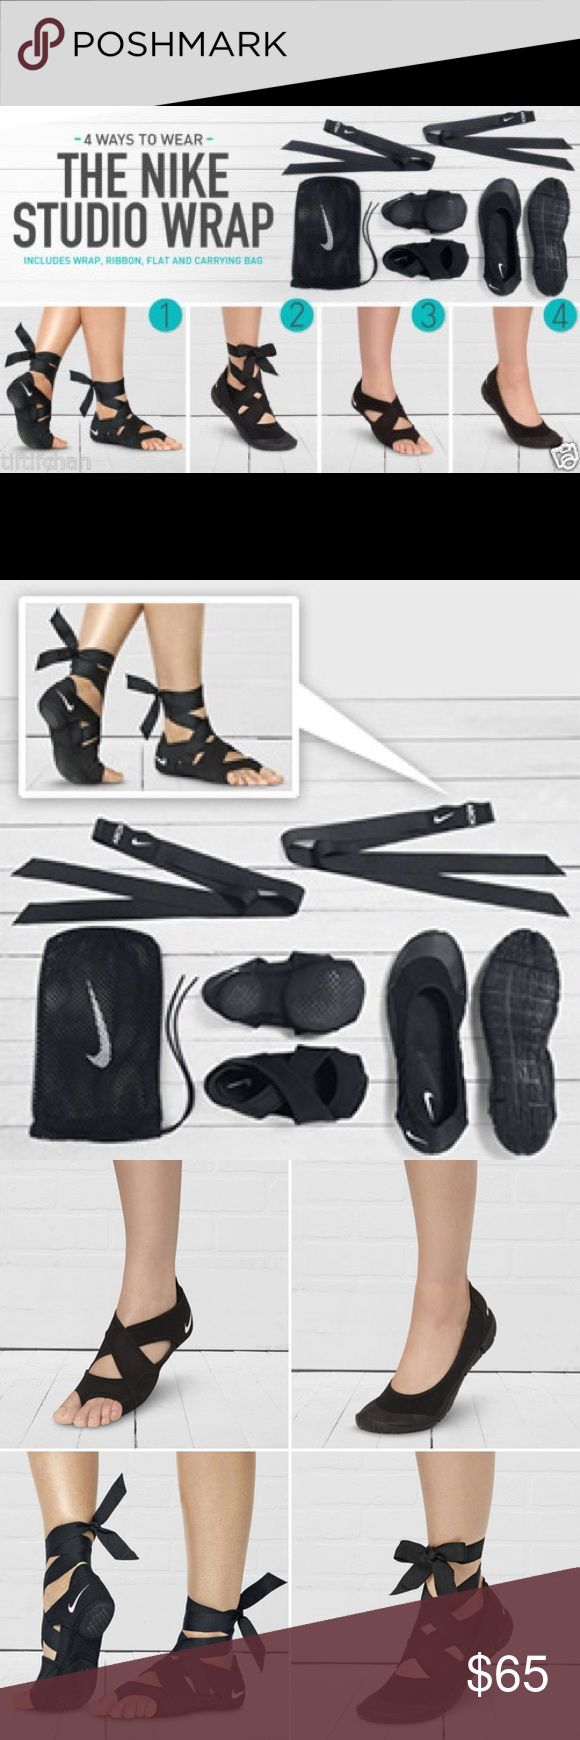 Nike Studio Wrap Pack Details  Designed to help you make the most of workouts that you typically do in bare feet, the Studio Wrap 3 Shoes are perfect for yoga, dance, Pilates, cardio workouts and core / strength training. Nike Shoes Athletic Shoes